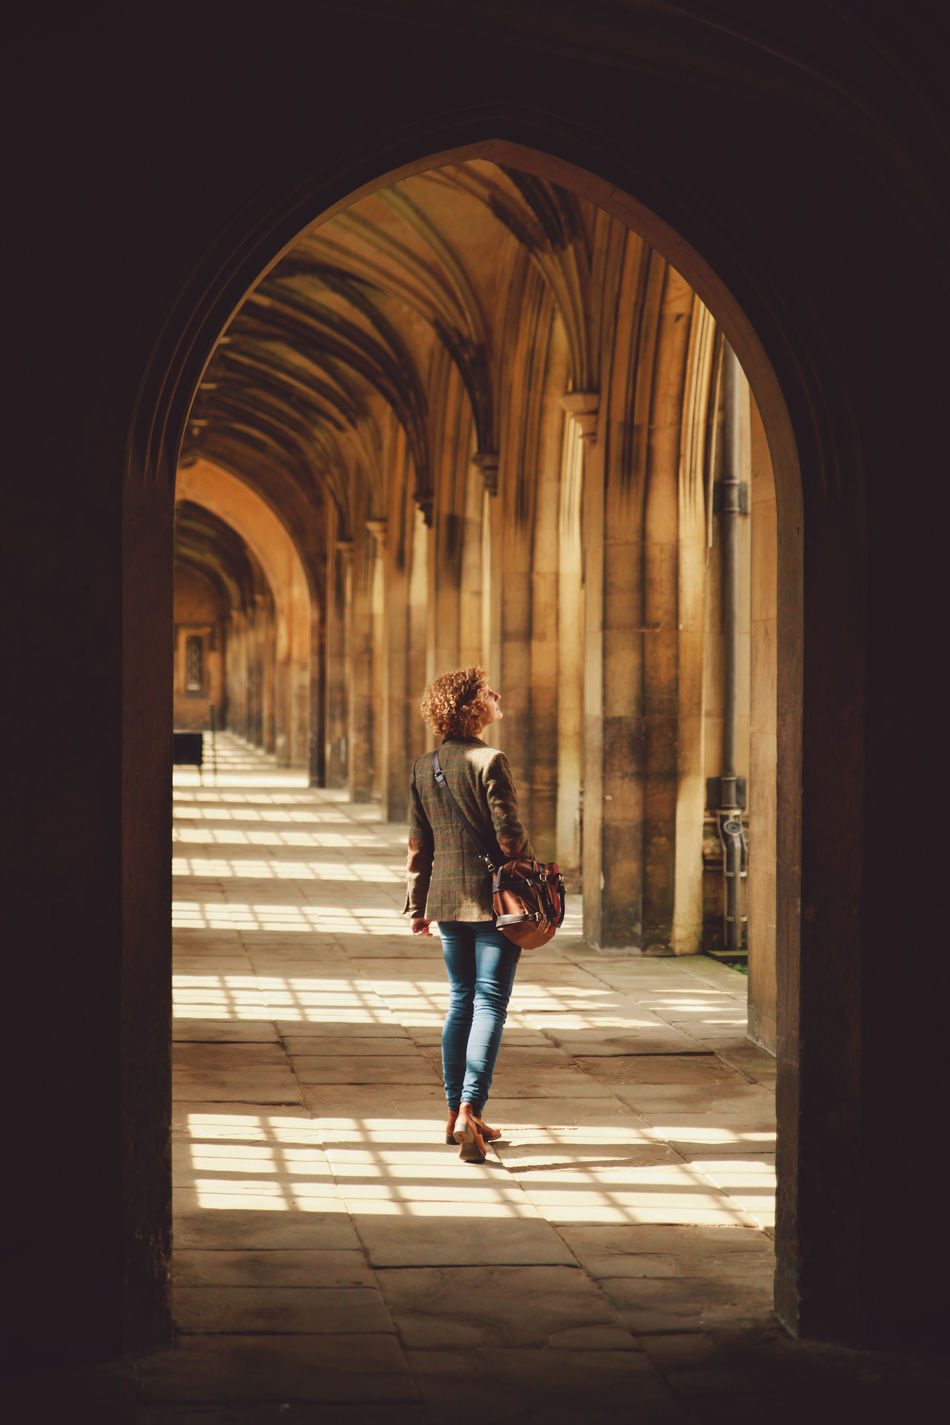 Alone Arch Architectural Column Architecture Archway Built Structure Corridor Countour Curly Hair Front View Full Length Girl Indoors  Leisure Activity Lifestyles Person Rear View Shadow Standing The Way Forward Walking The Portraitist - 2016 EyeEm Awards Feel The Journey 43 Golden Moments People And Places The Secret Spaces